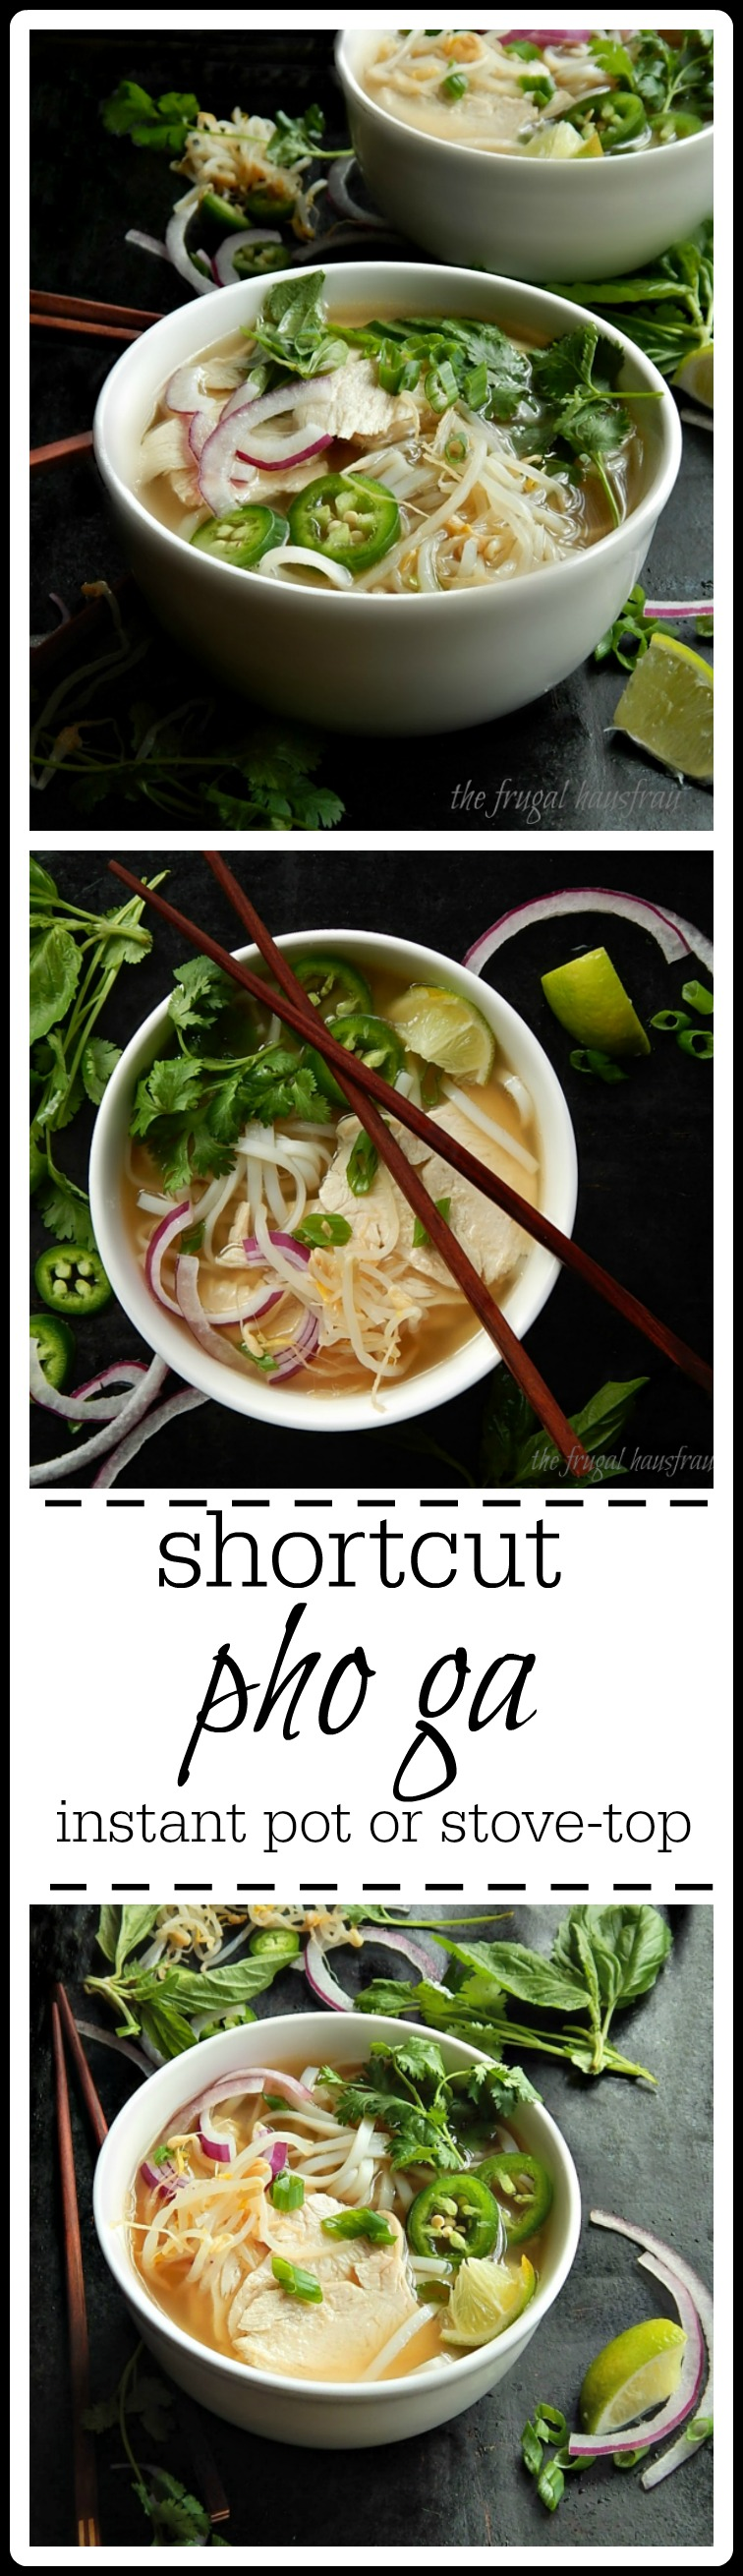 Pho Ga Quick & easy - shortcut from your Thanksgiving leftovers or make with leftover or poached chicken. You'll never guess this isn't a from scratch recipe! 